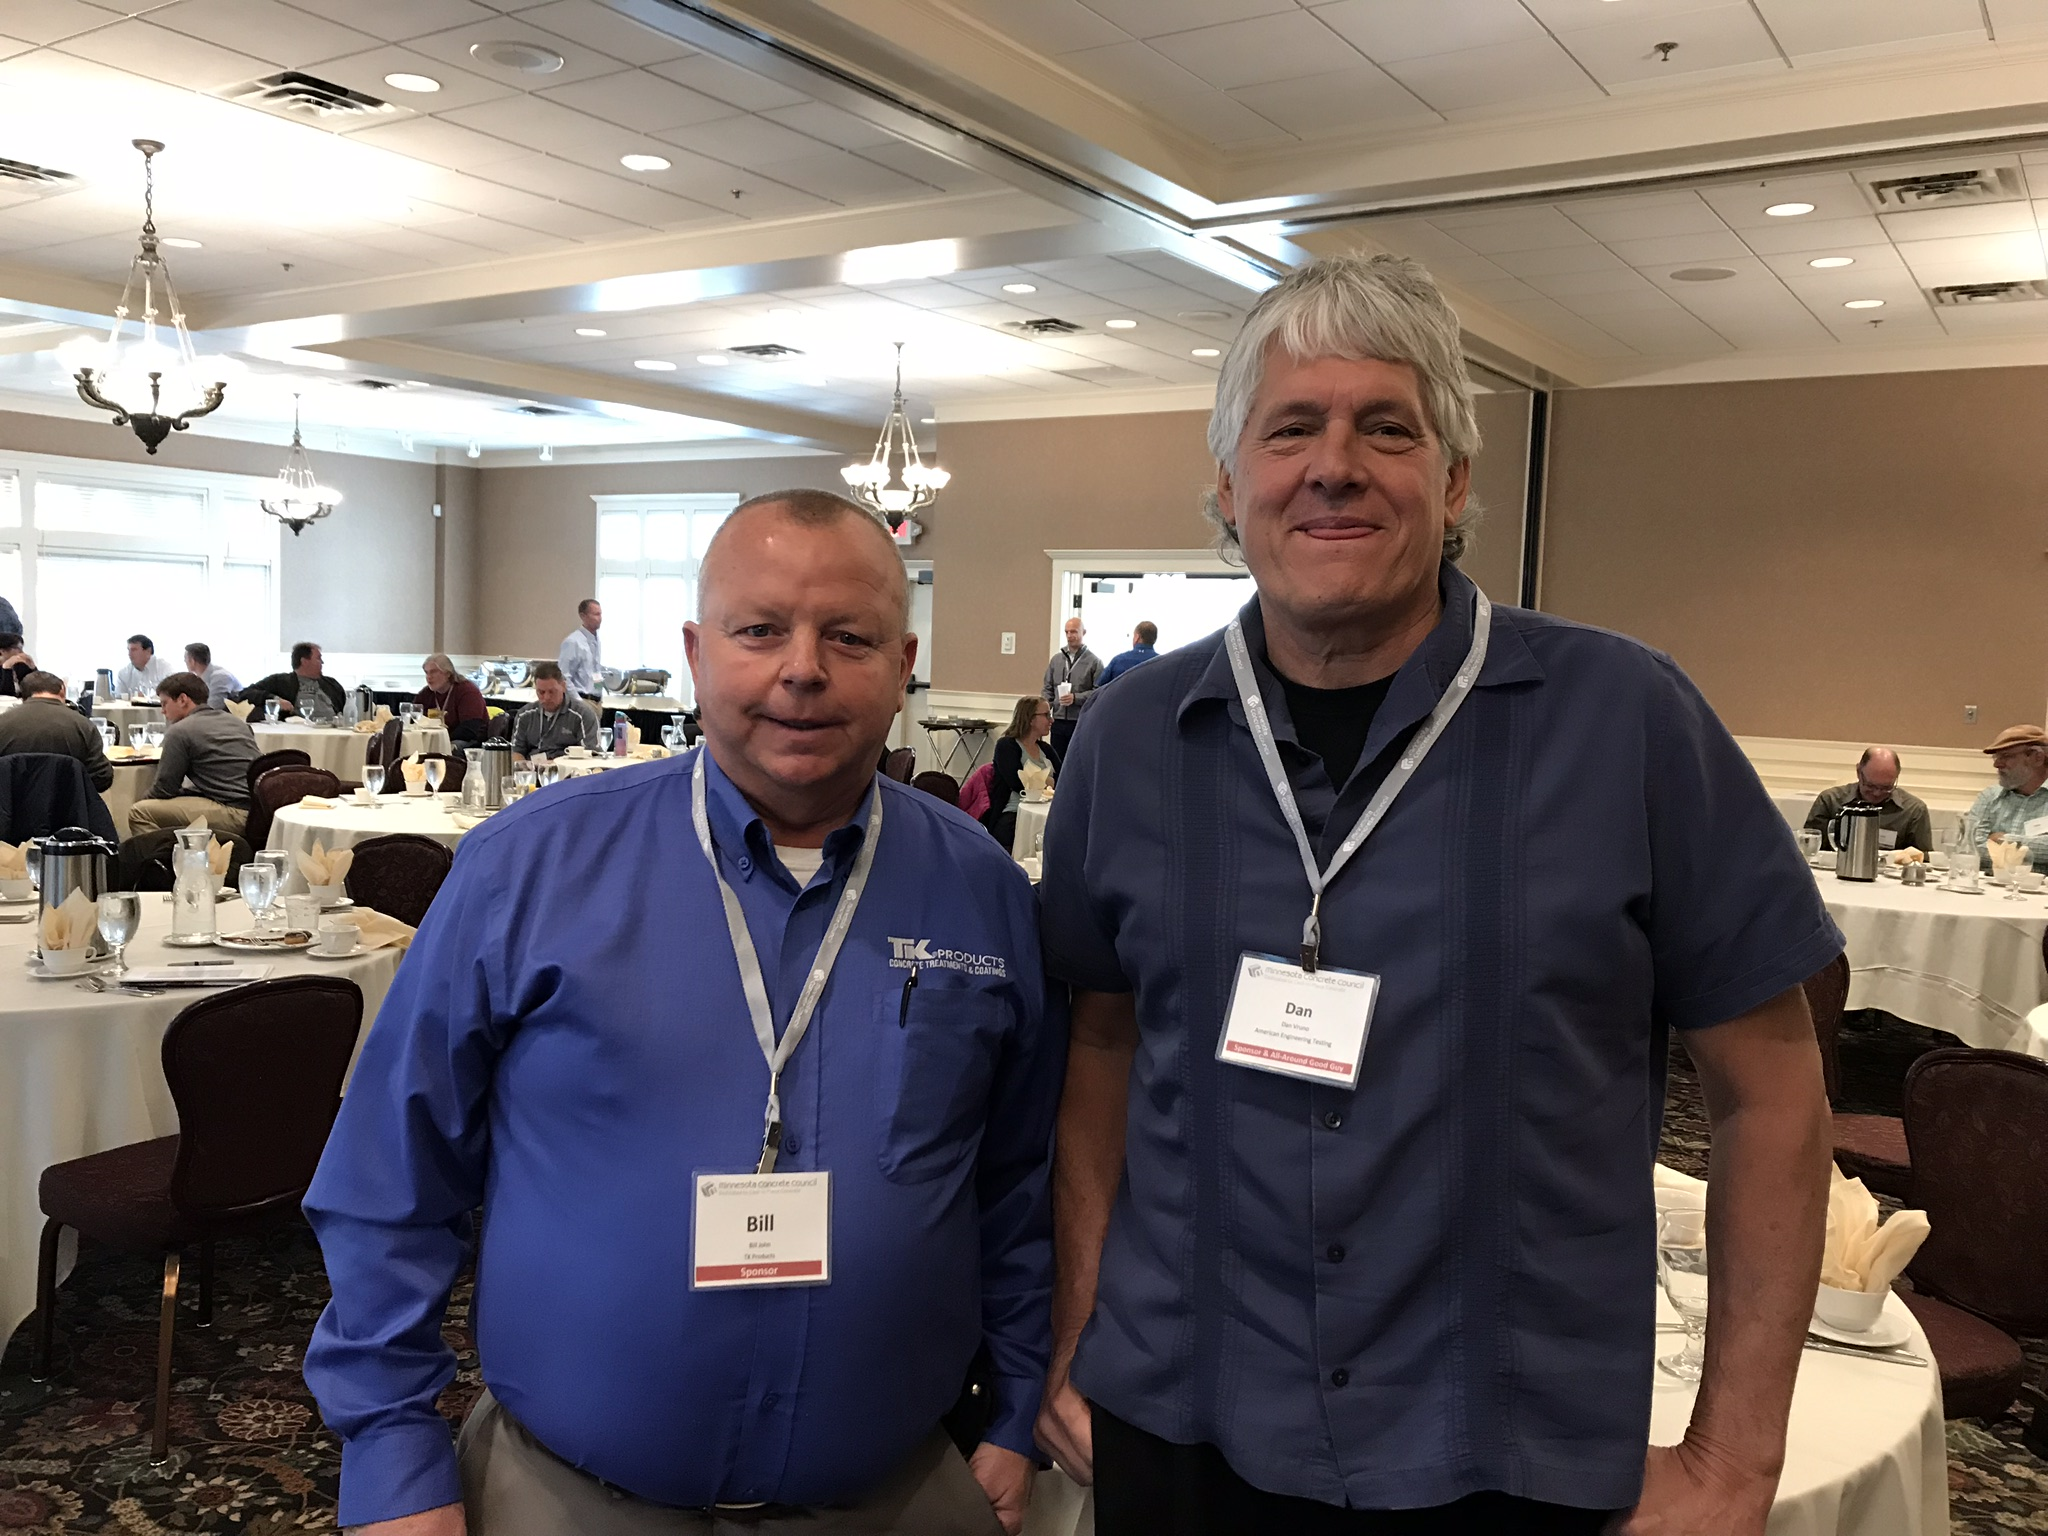 Bill John and Dan Vruno 2017 MCC Fall Symposium